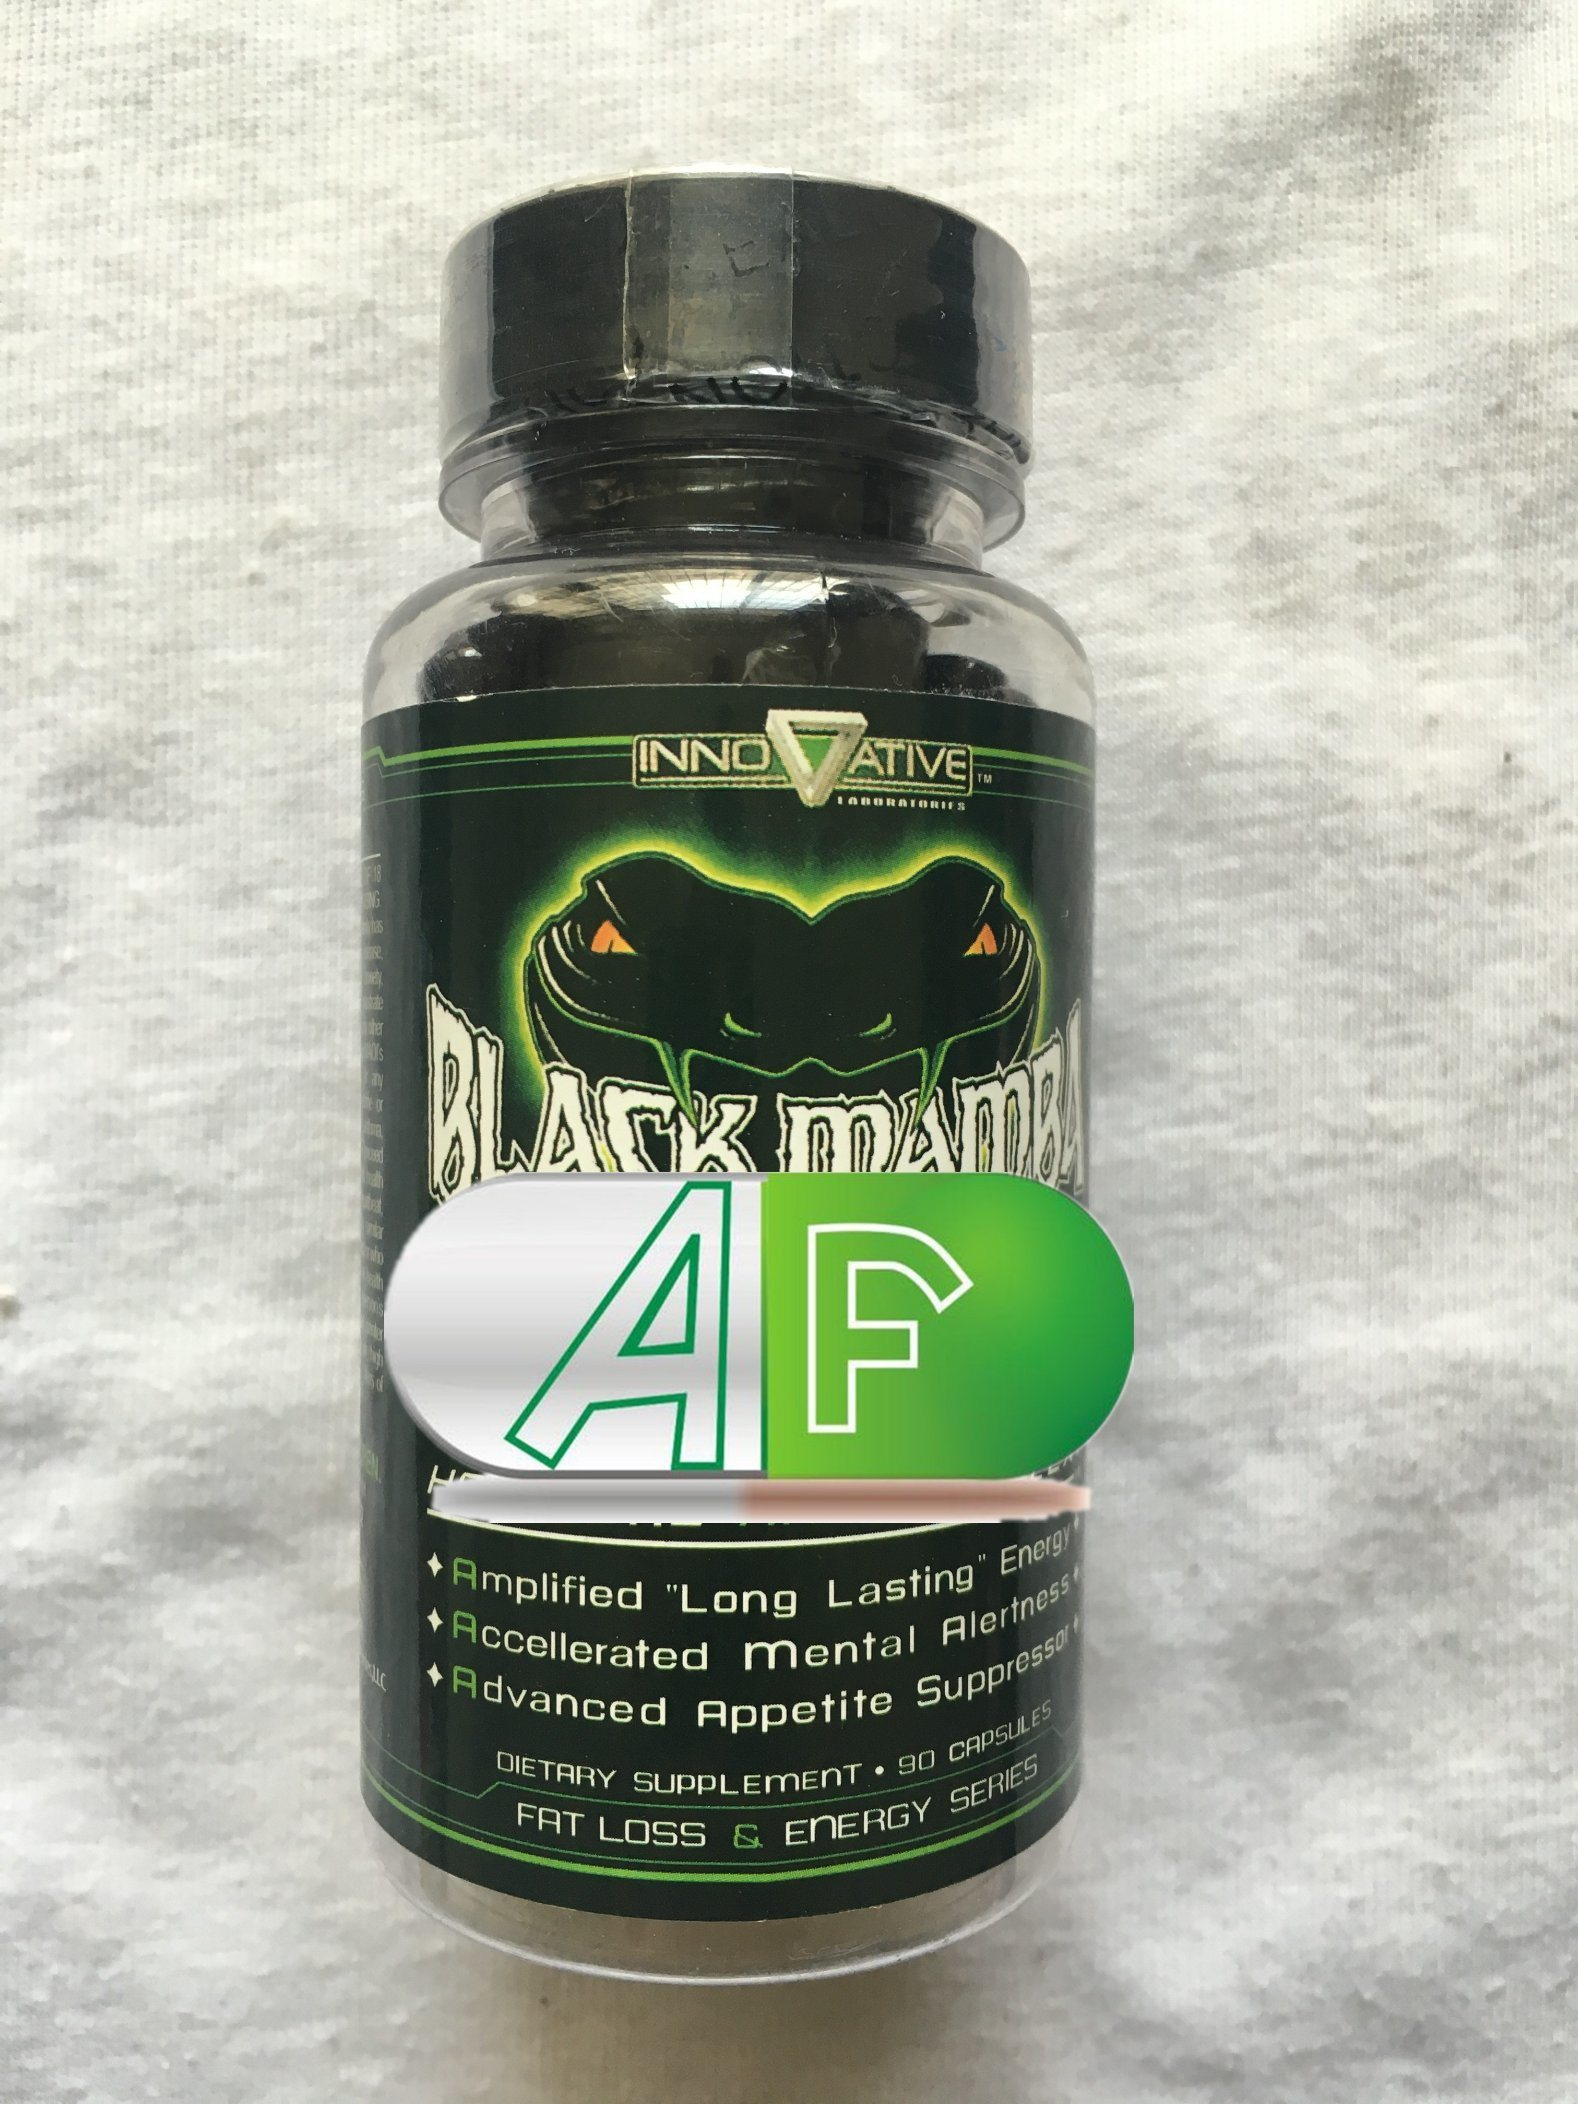 Black Mamba Hyperrush Fat Burner Slimming Capsule, 90 Capsules